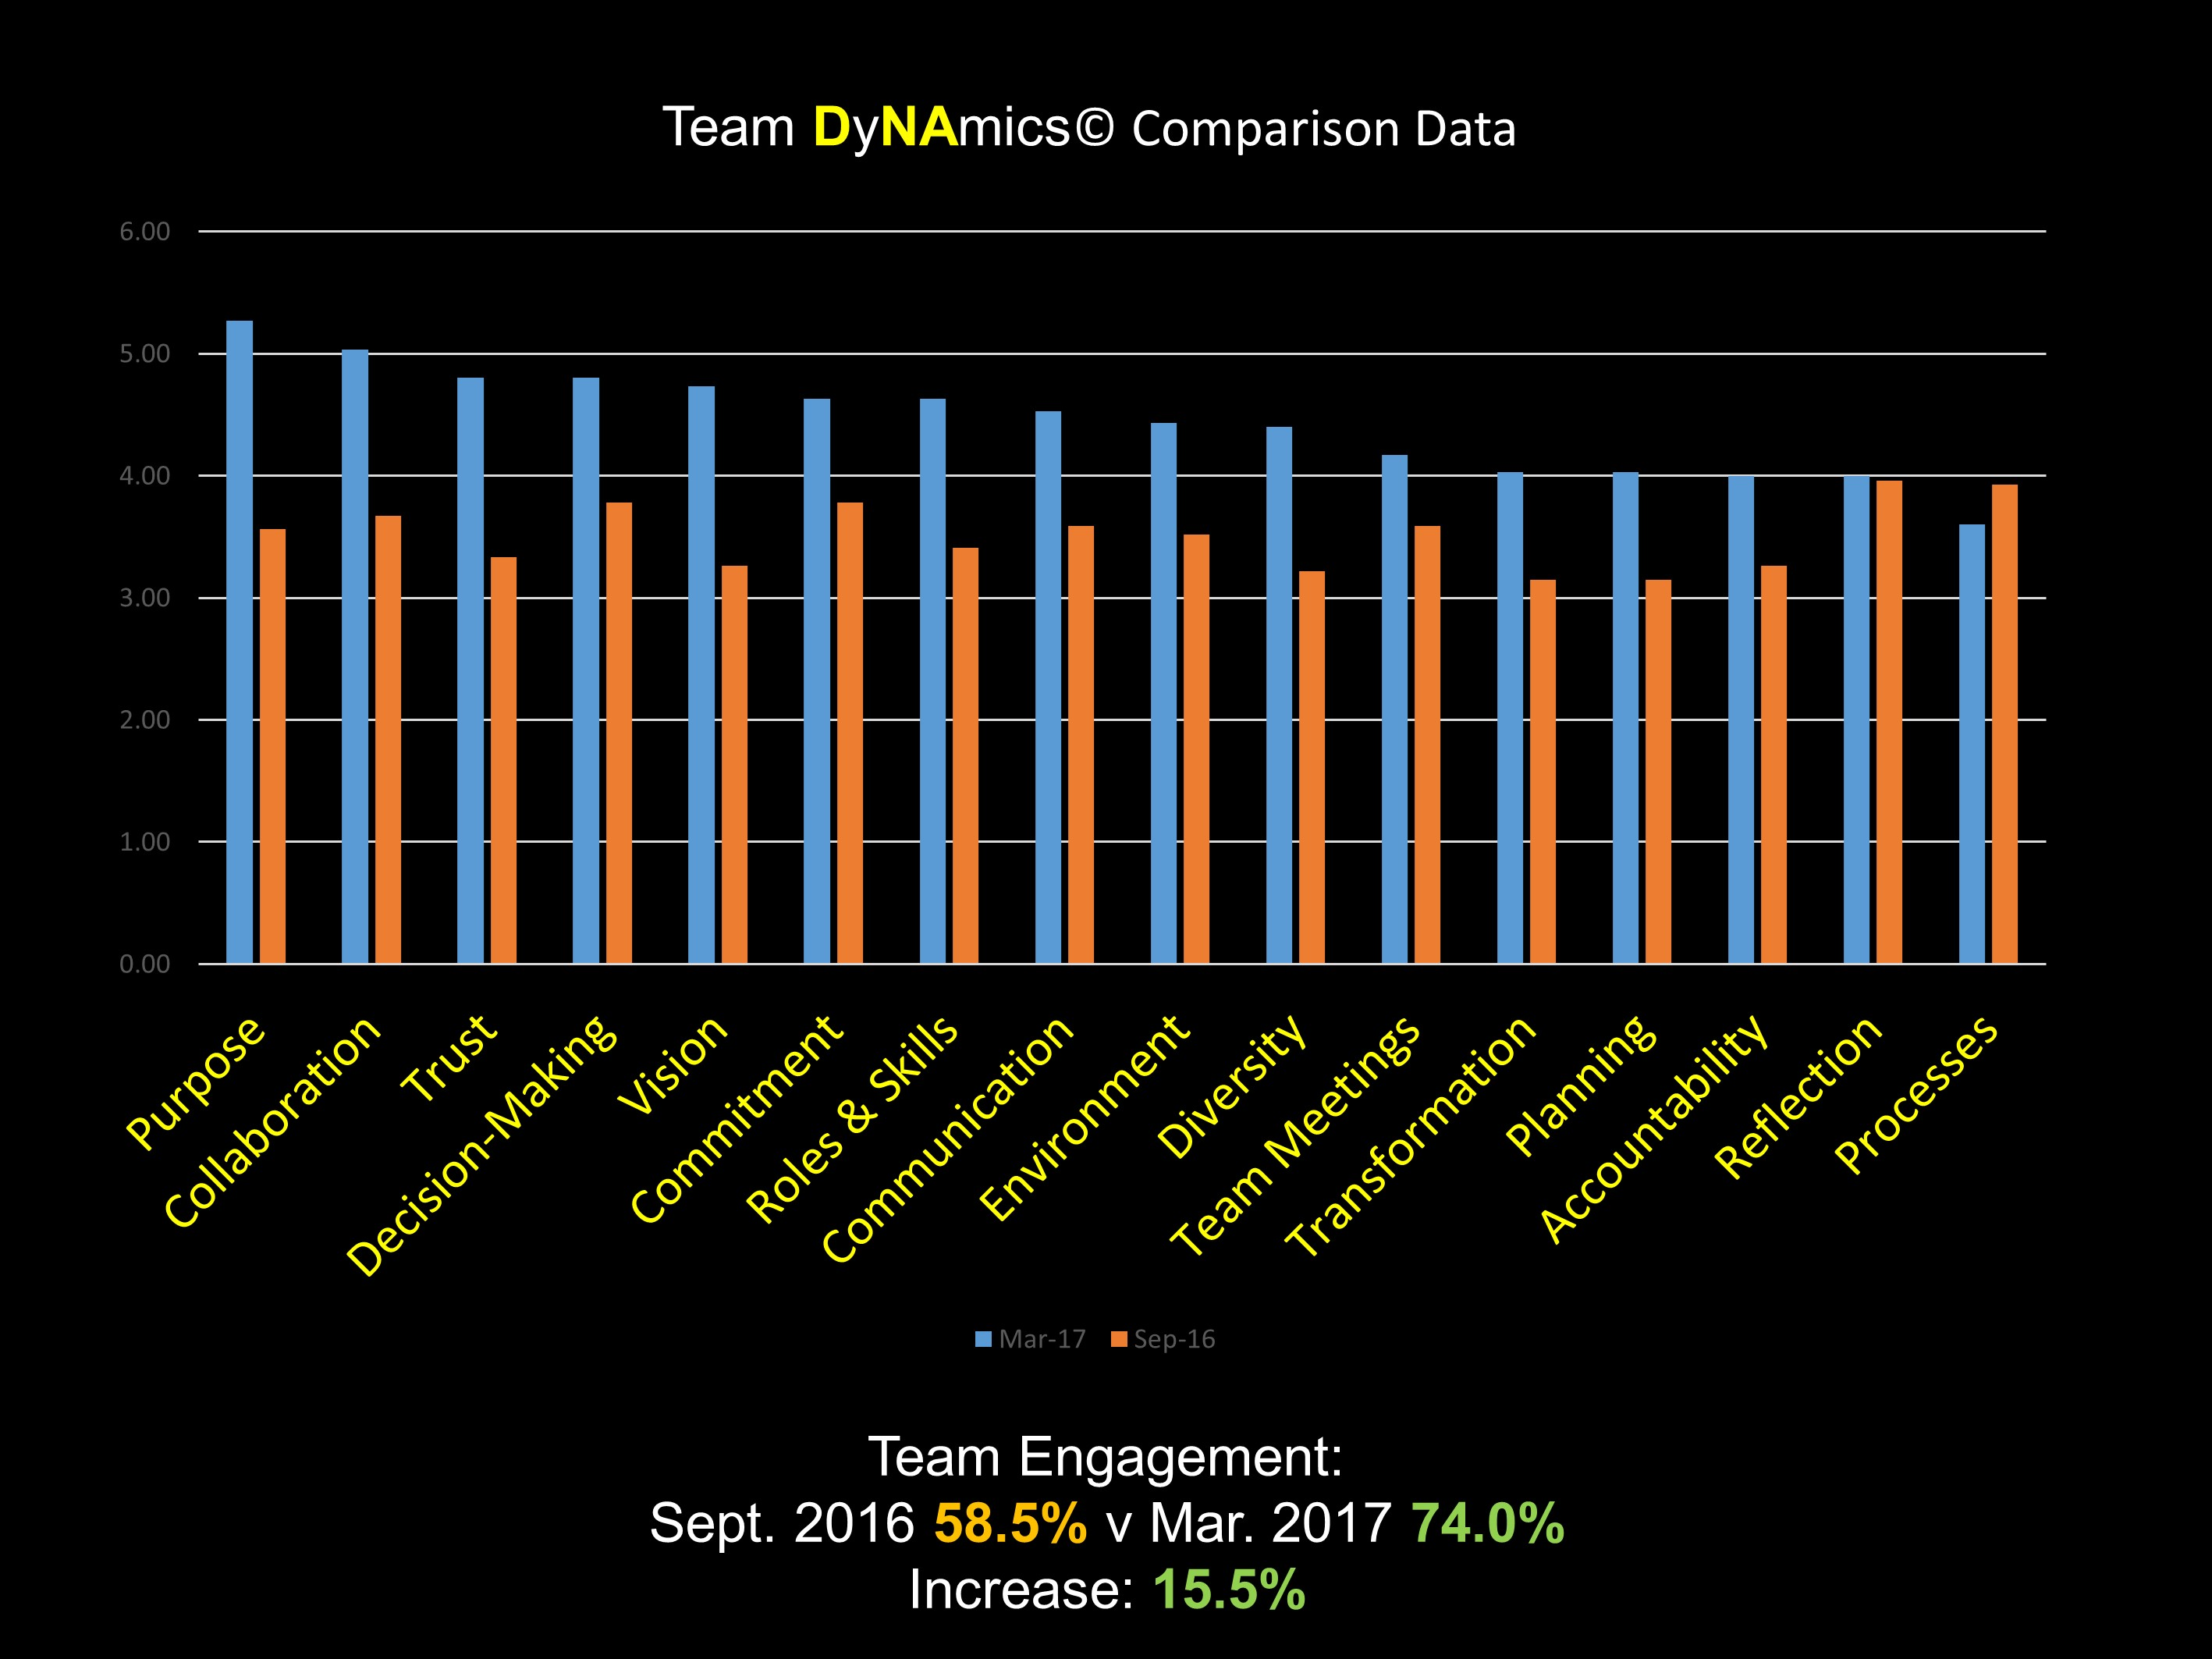 Ngagementworks Team DyNAmics Comparison